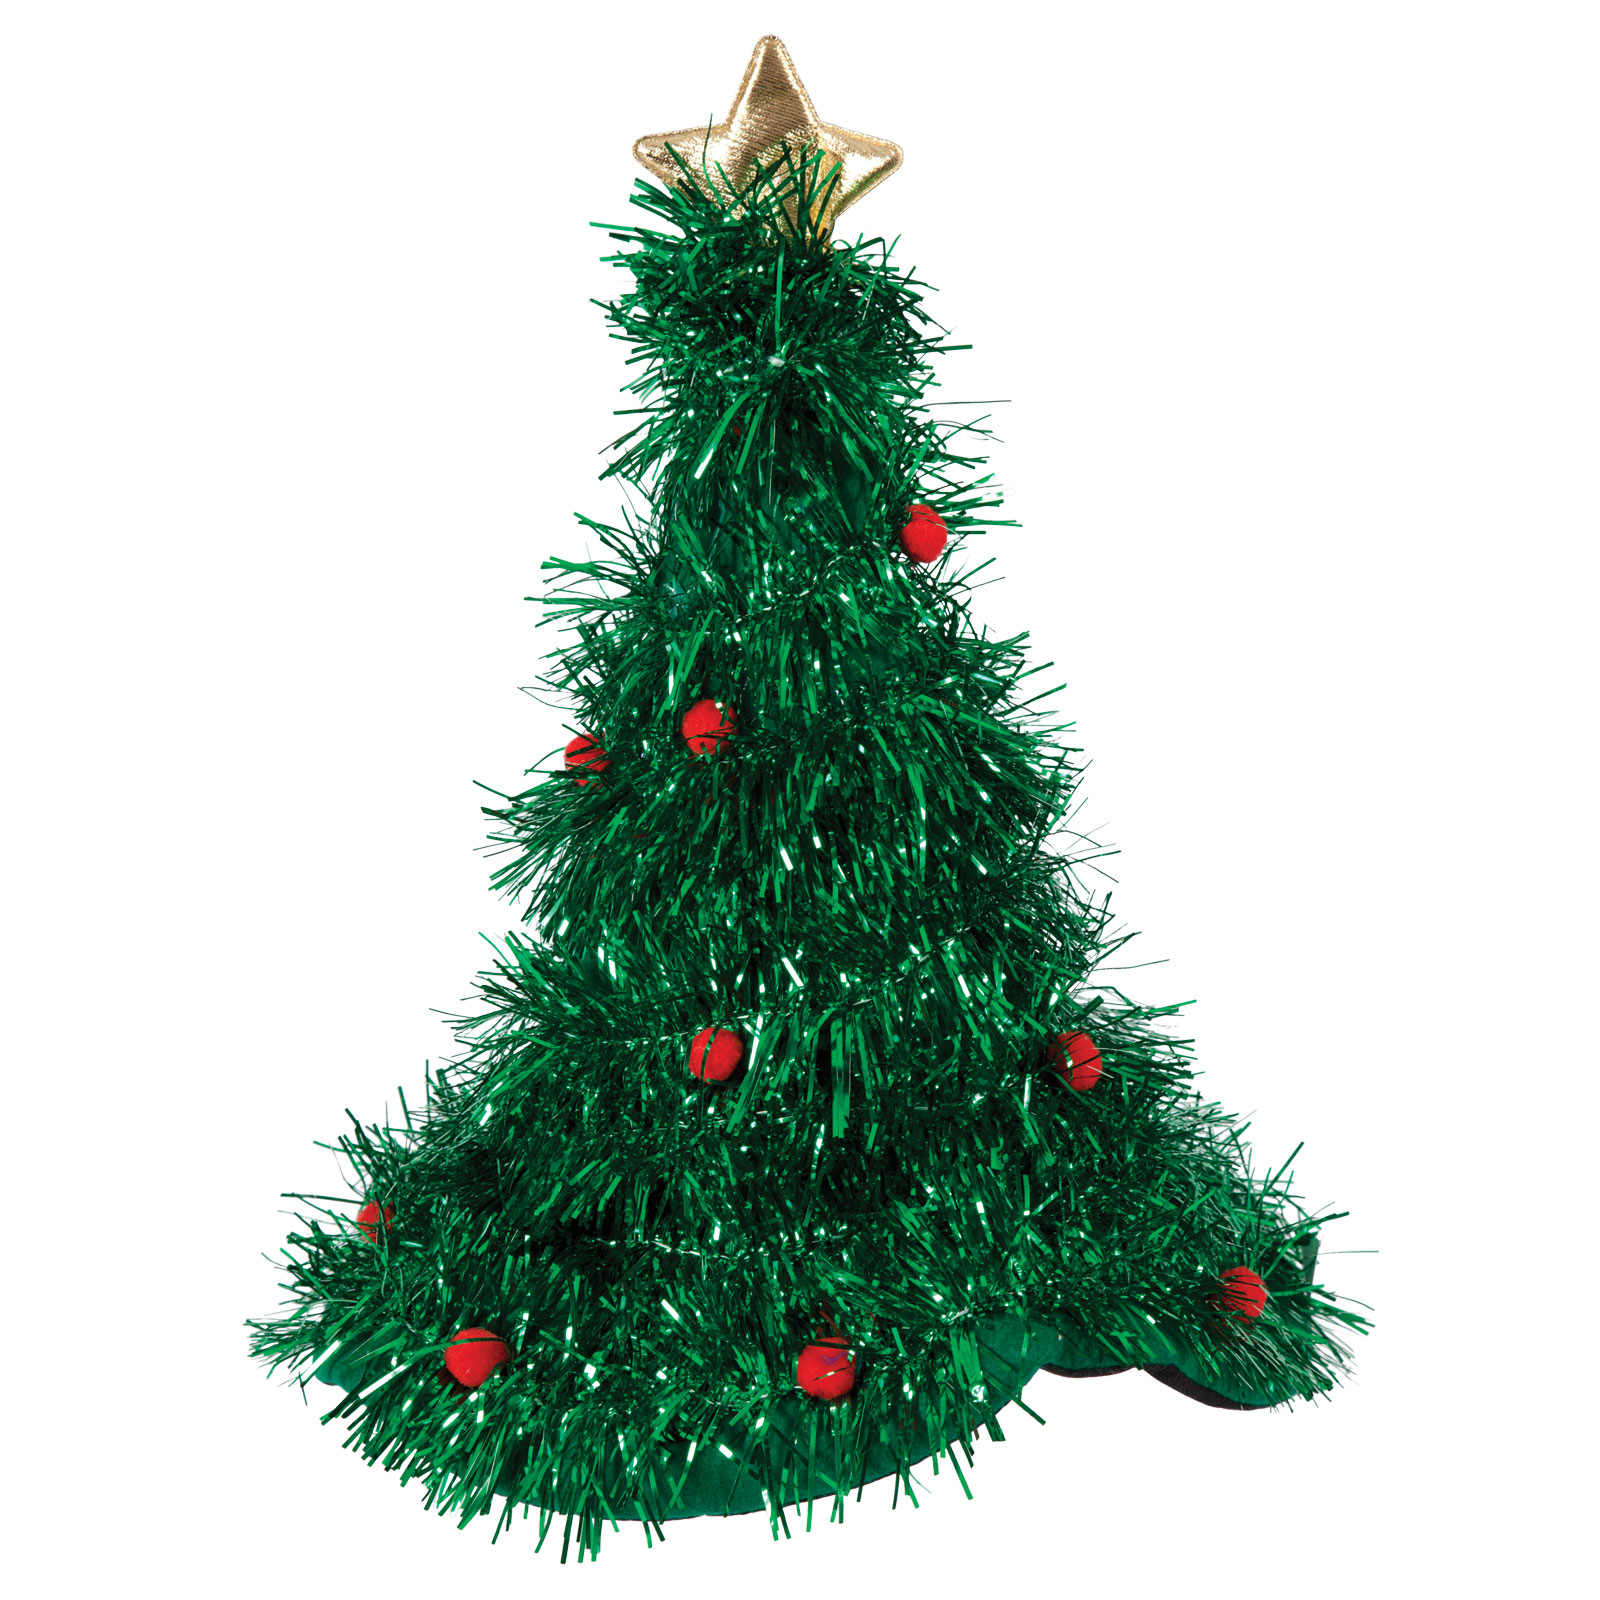 Christmas tree dress up images - Christmas Tree Hat With Tinsel Fancy Dress Christmas Santa Xmas Dress Up Festive Christmas Xs Party